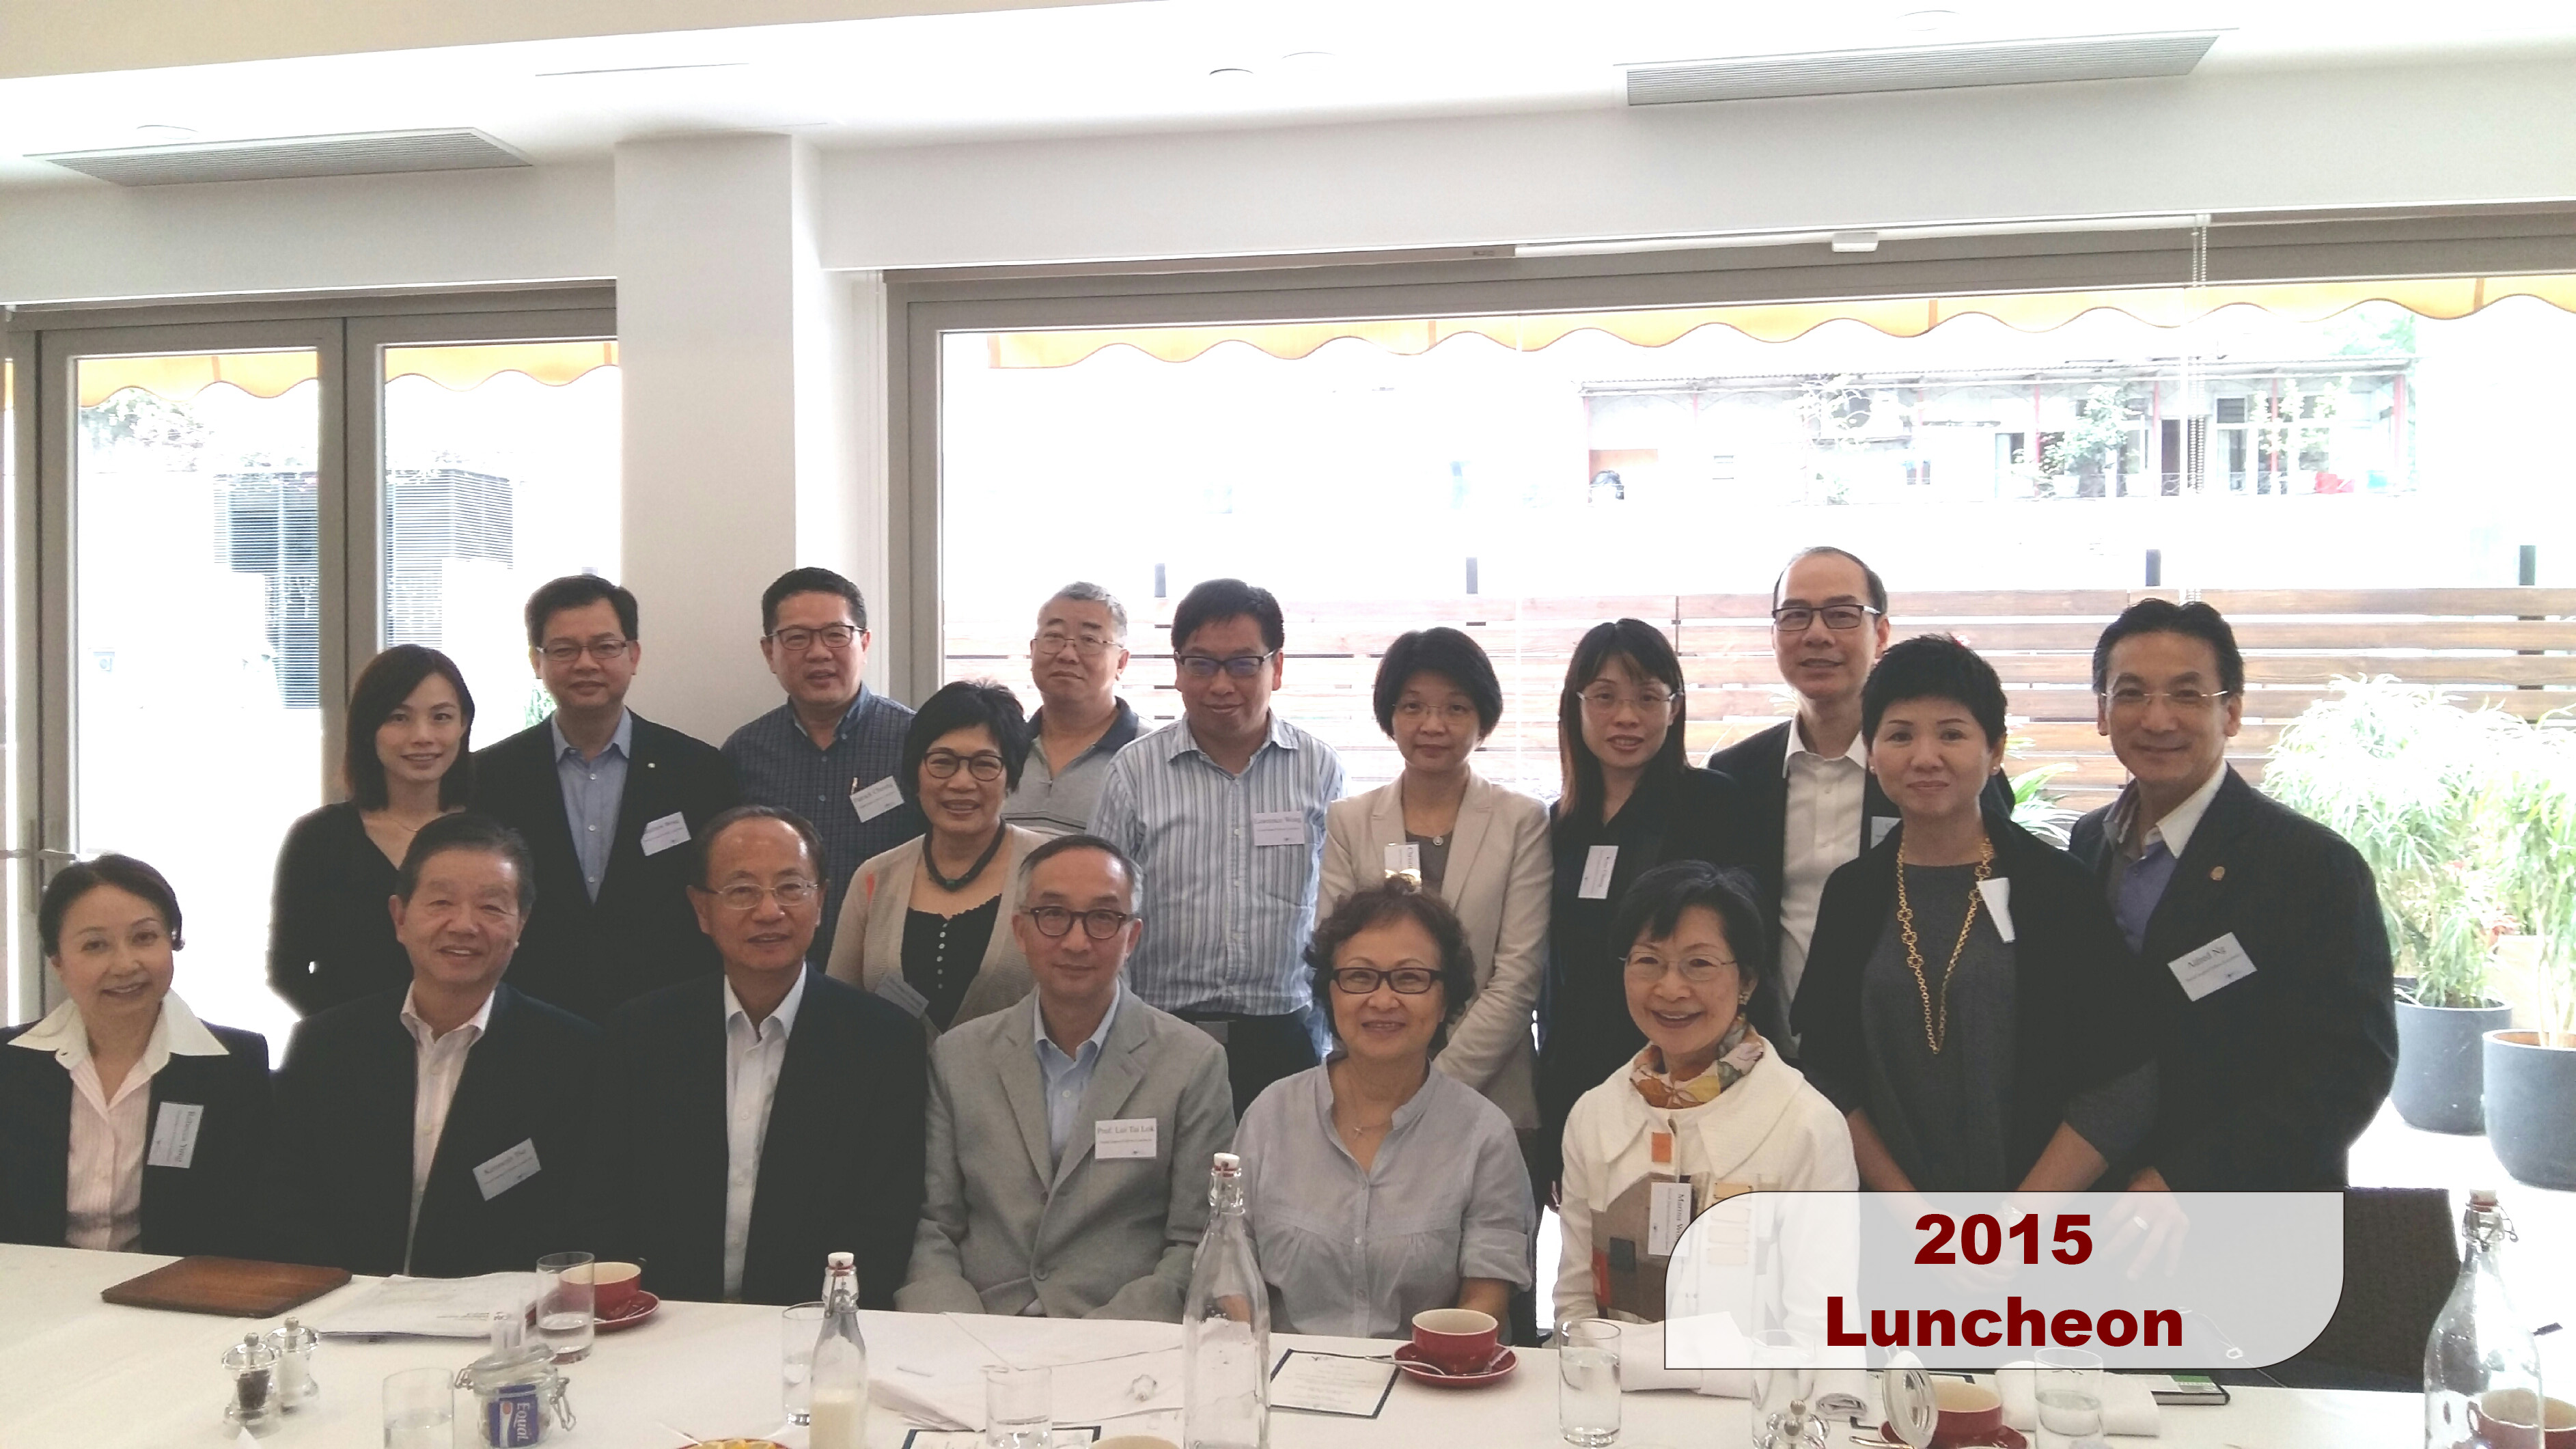 (2015 Luncheon) SIF Luncheon on 22 April 2015 edited